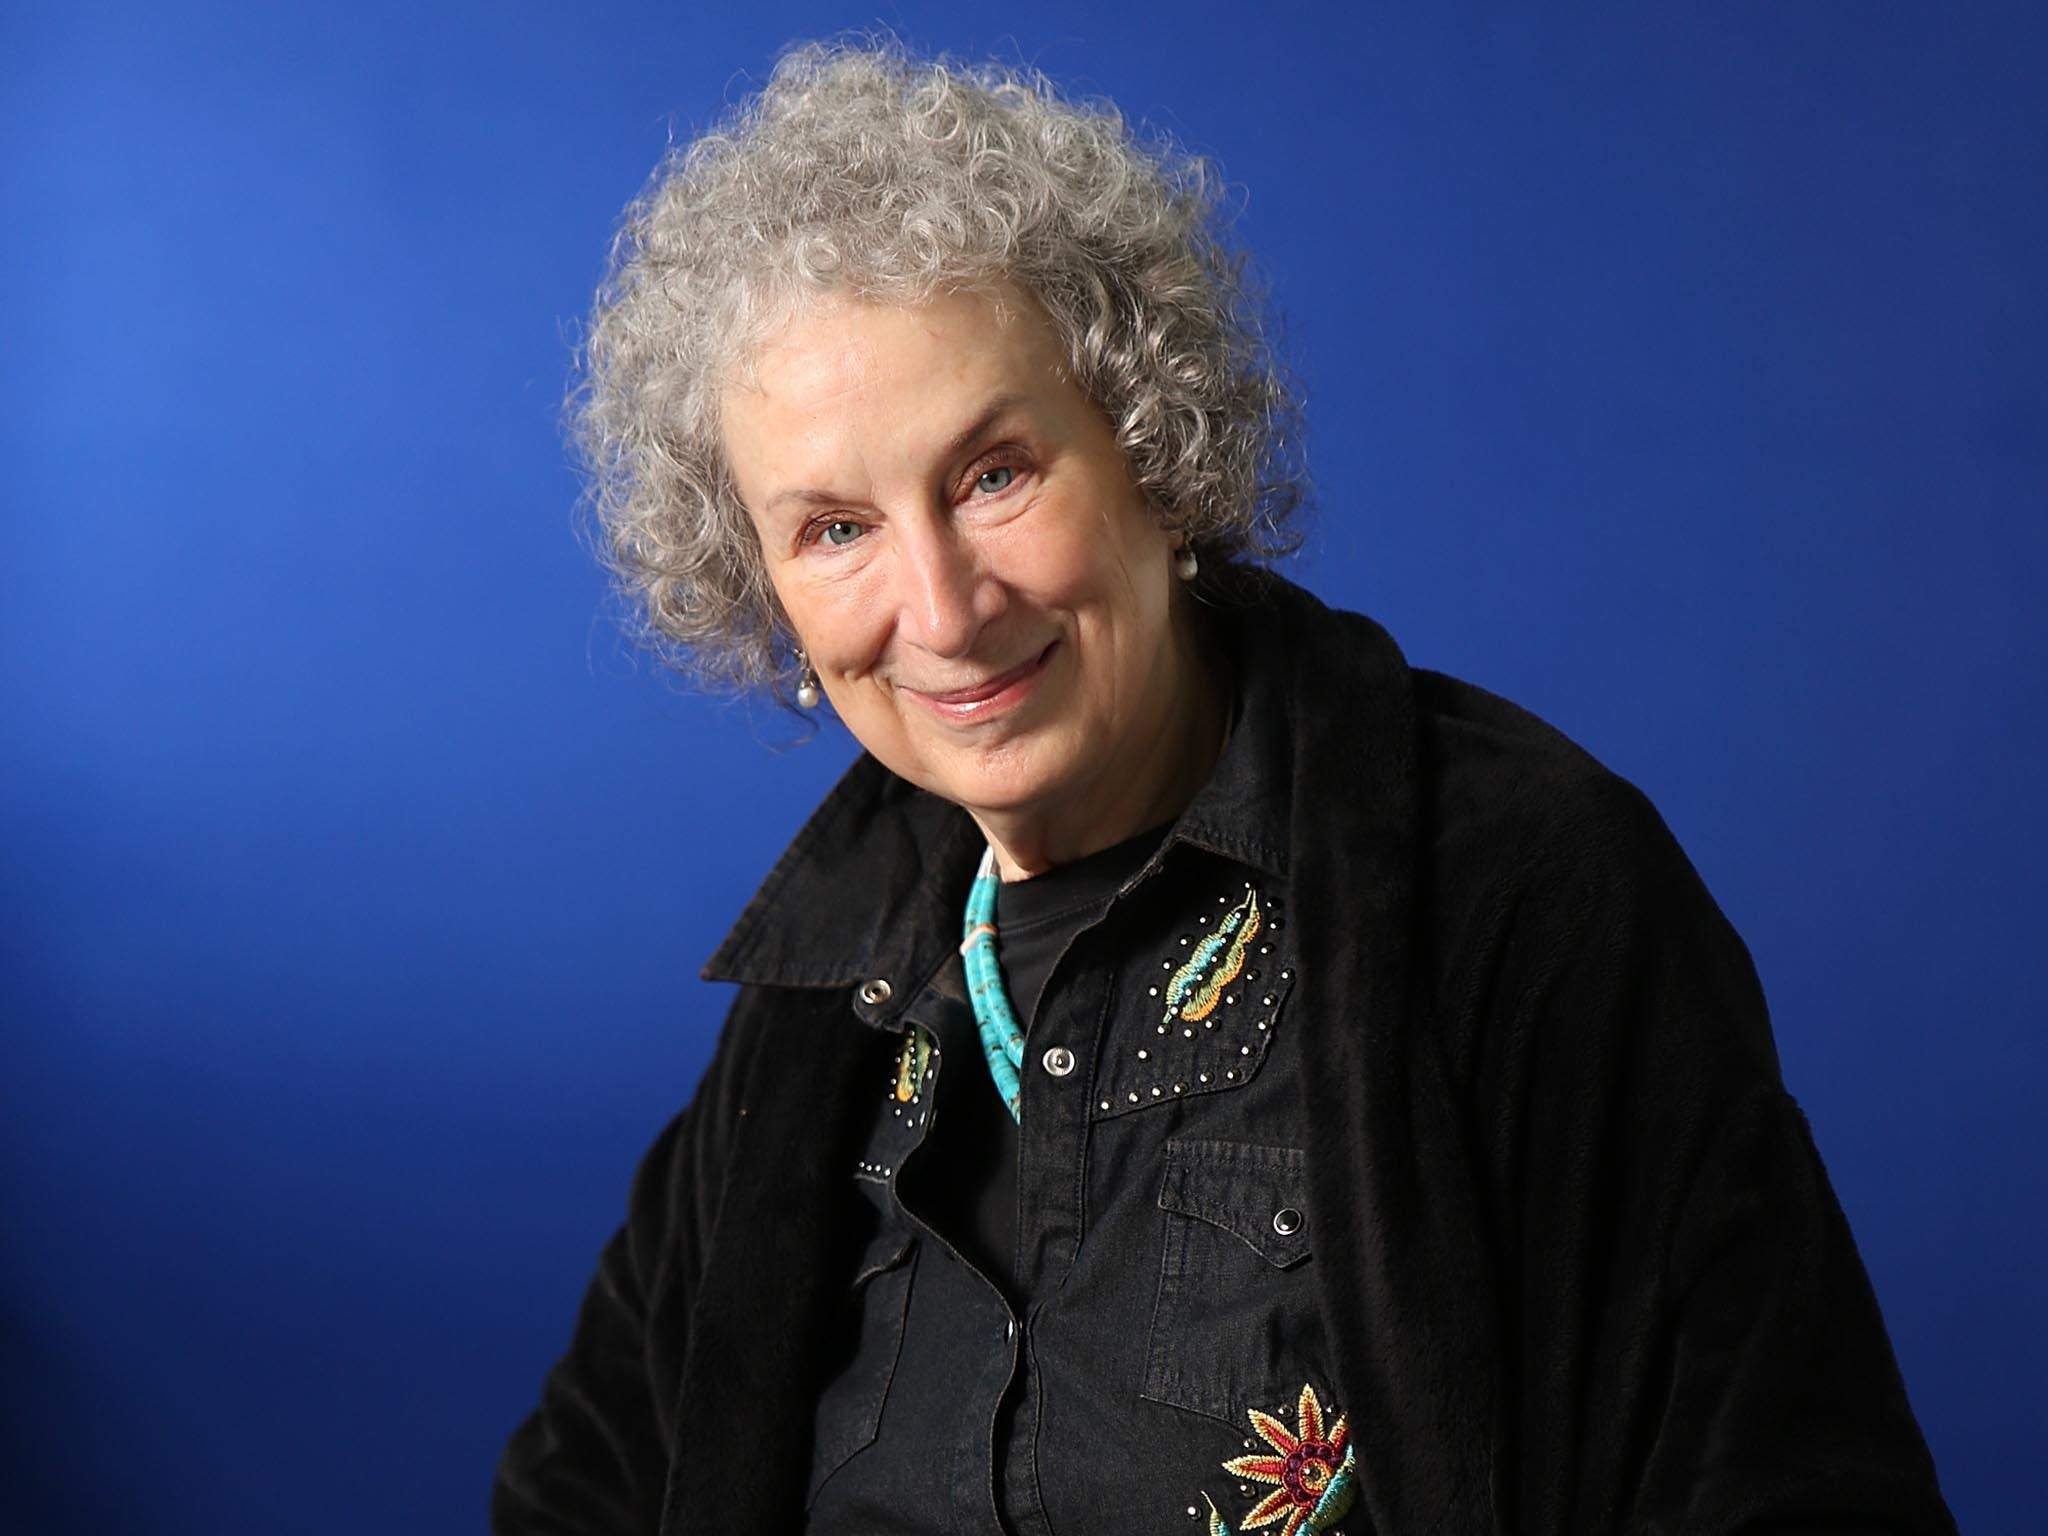 a letter to america margaret atwood Margaret atwood's letter to america is written from the perspective of a canadian citizen addressing the unfavorable political decisions being made by america warning them that the choices being made could be detrimental to not only american citizens, but also people around the .